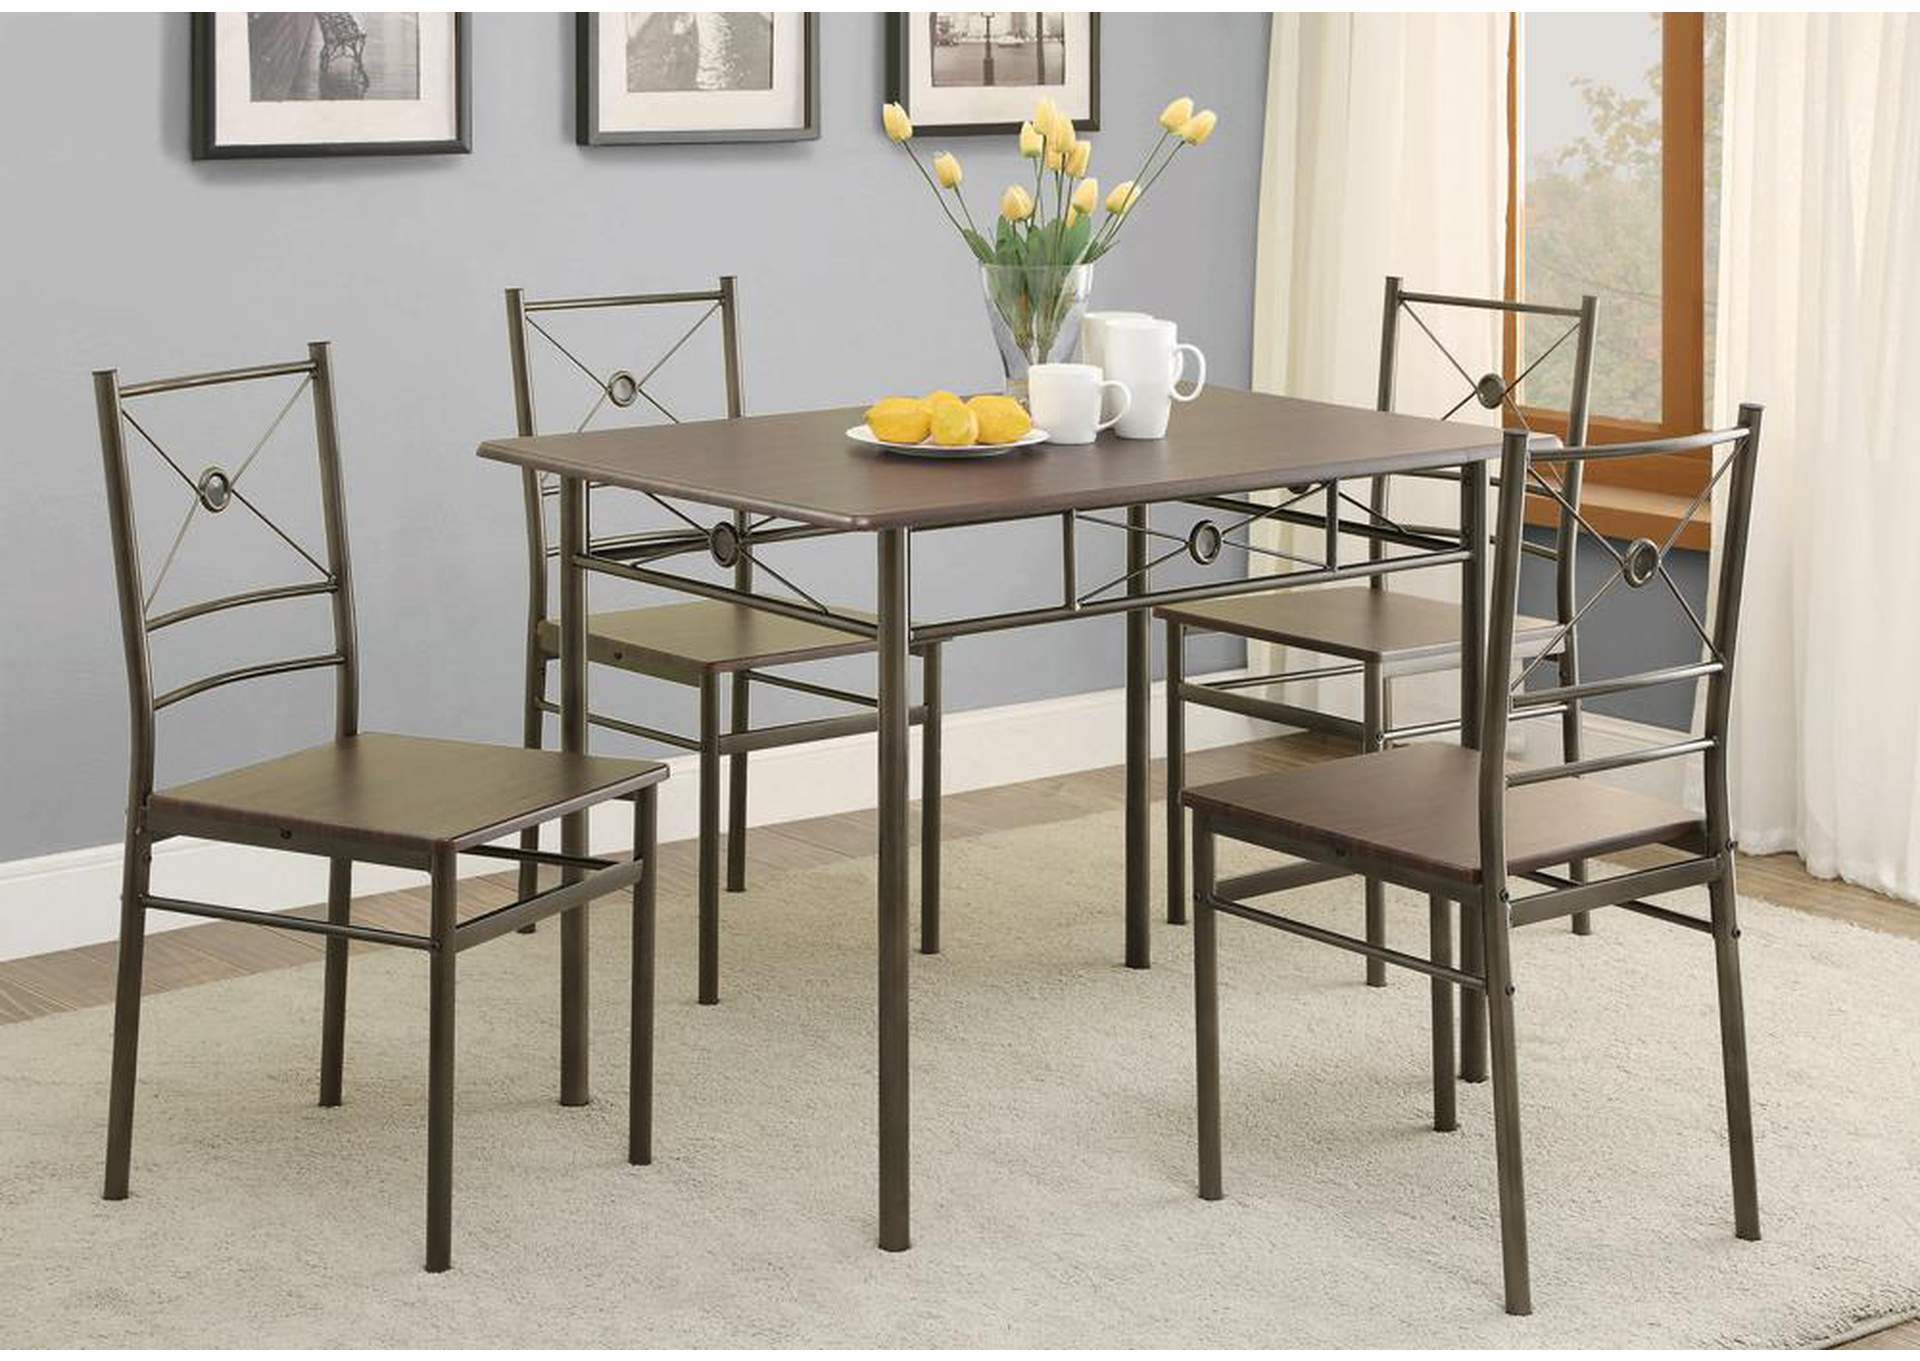 Walnut 5 Pc Set,ABF Coaster Furniture